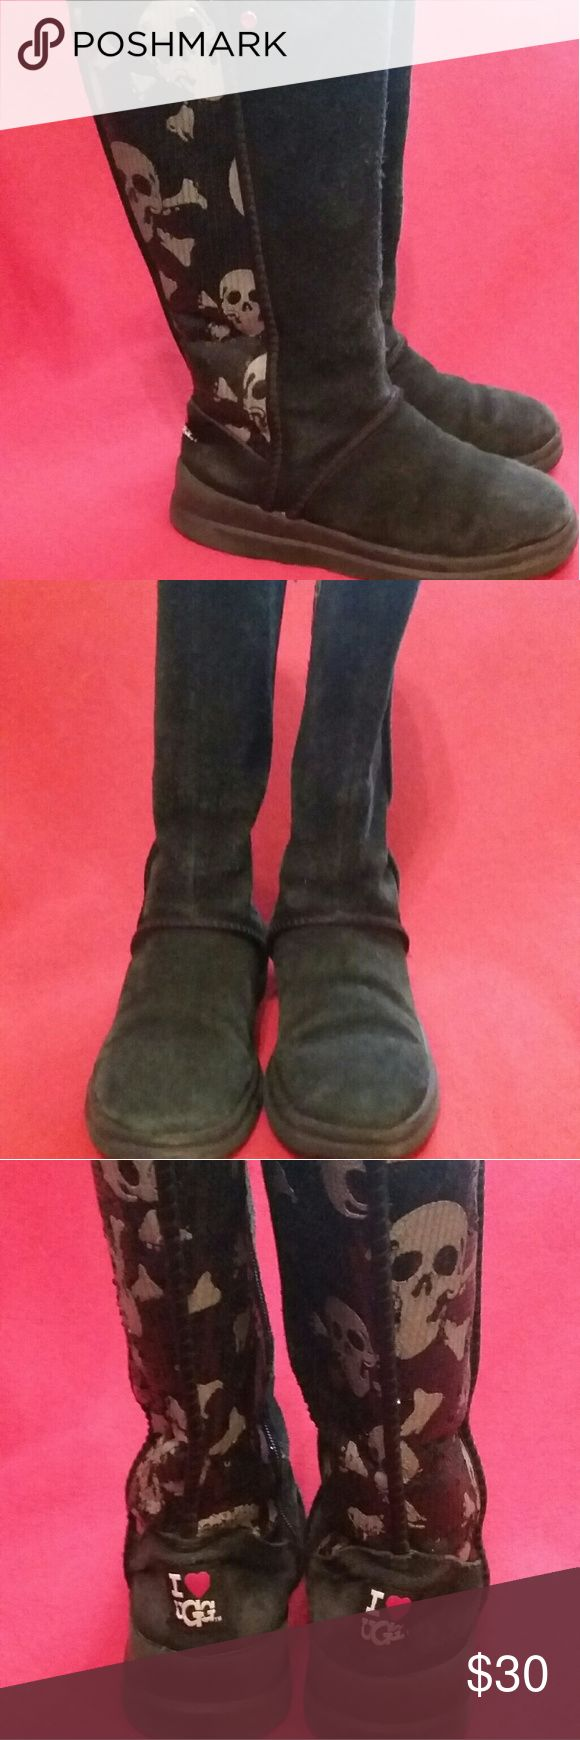 Women's Ugg Boots Preloved Cute Black Uggs with Skulls & Sequins Sz 6. Shows signs of wear have alot of life left. 8 out of 10. UGG Shoes Winter & Rain Boots